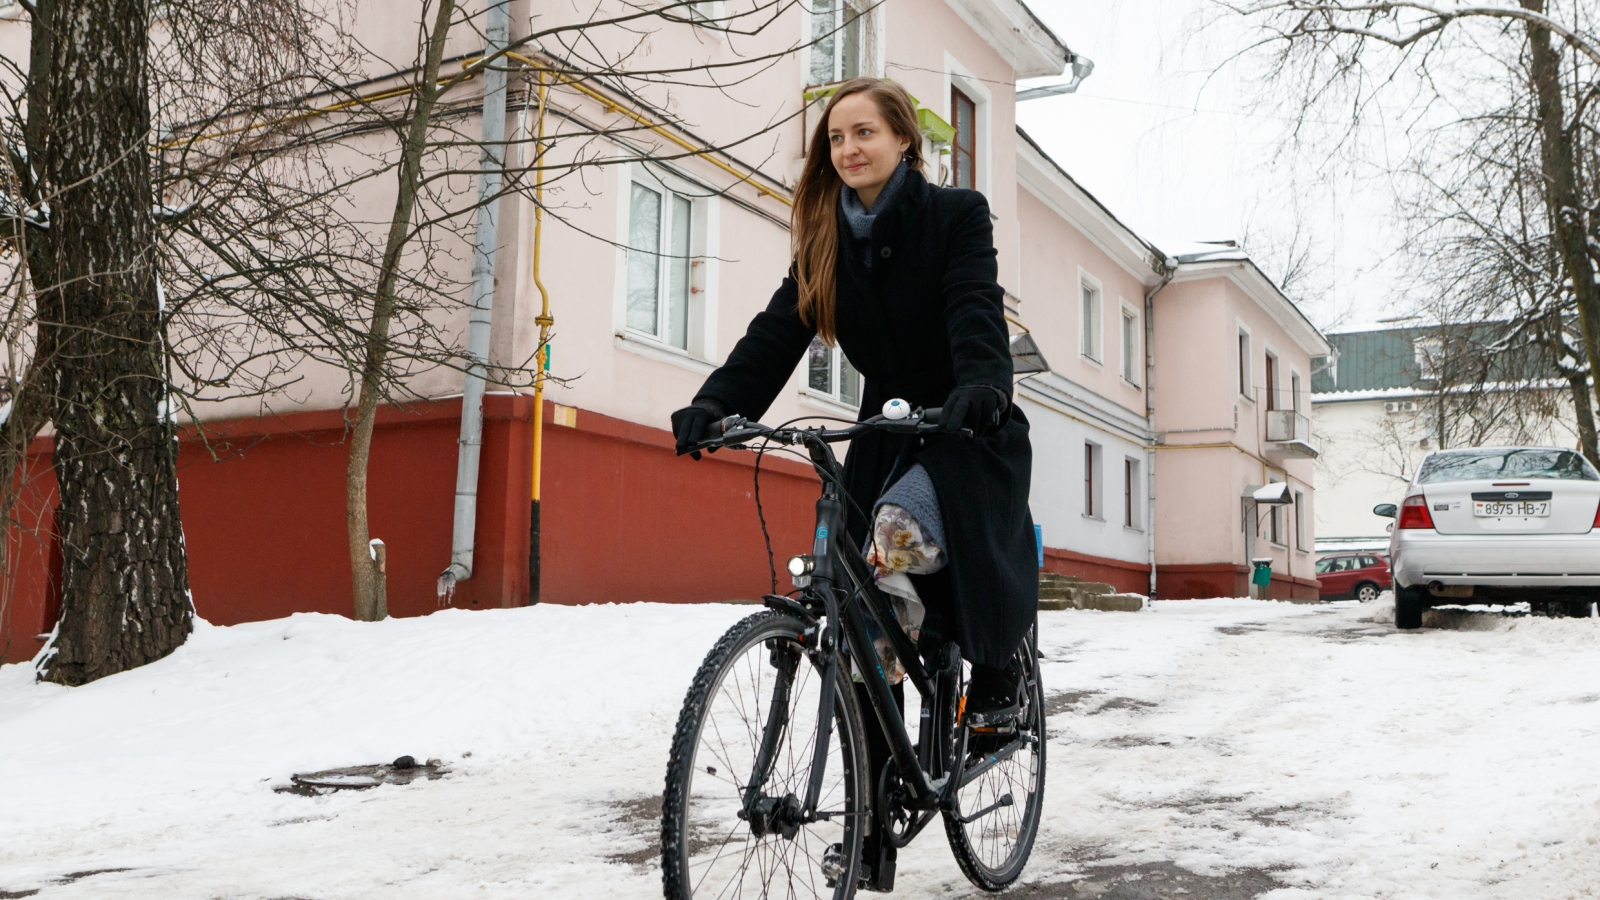 Anastasia Yanchevskaya manages the largest and most influential community of cyclists in the country